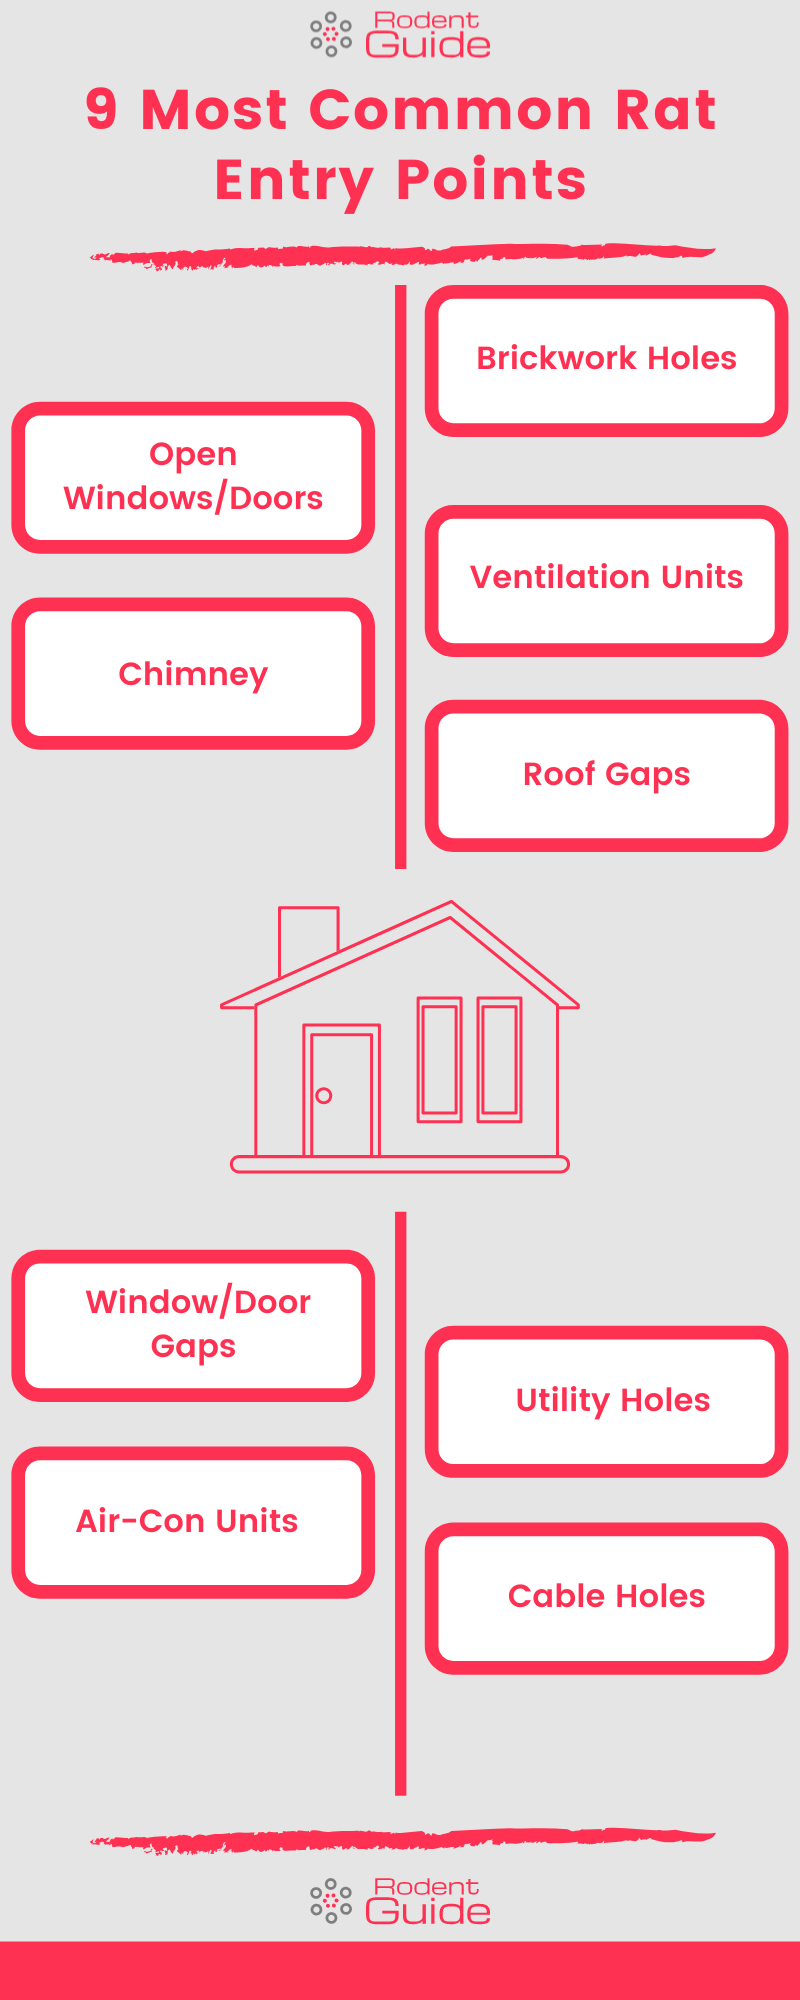 9 Most Common Rat Entry Points Infographic